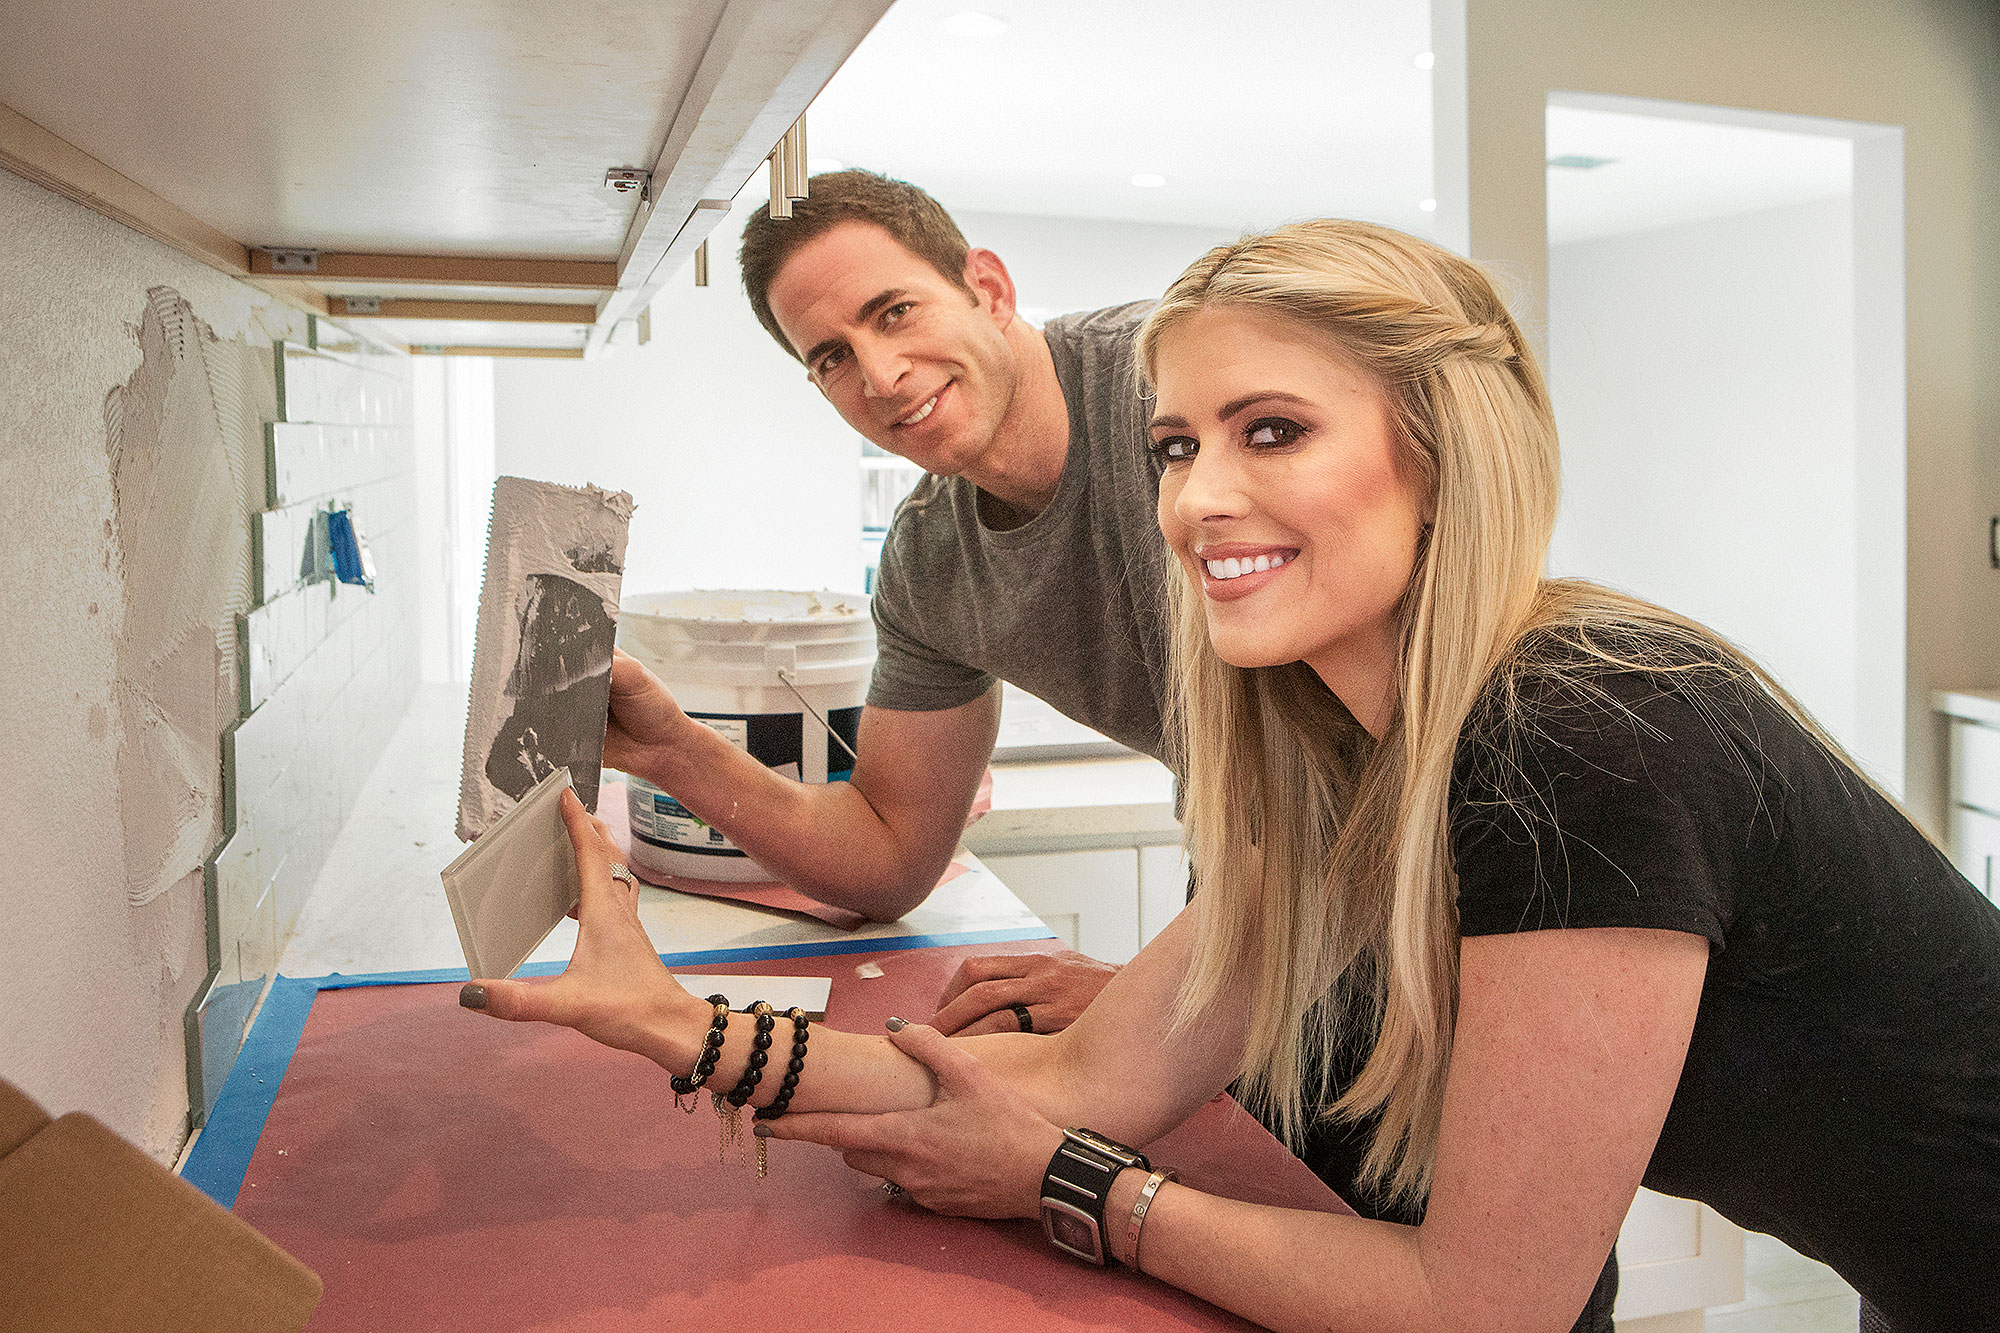 As seen on HGTV's Flip or Flop, Tarek and Christina El Moussa install back-splash tiles in the kitchen of a home that they are renovating. © 2015, HGTV/Scripps Networks, L.L.C. All Rights Reserved Commissioned photographer